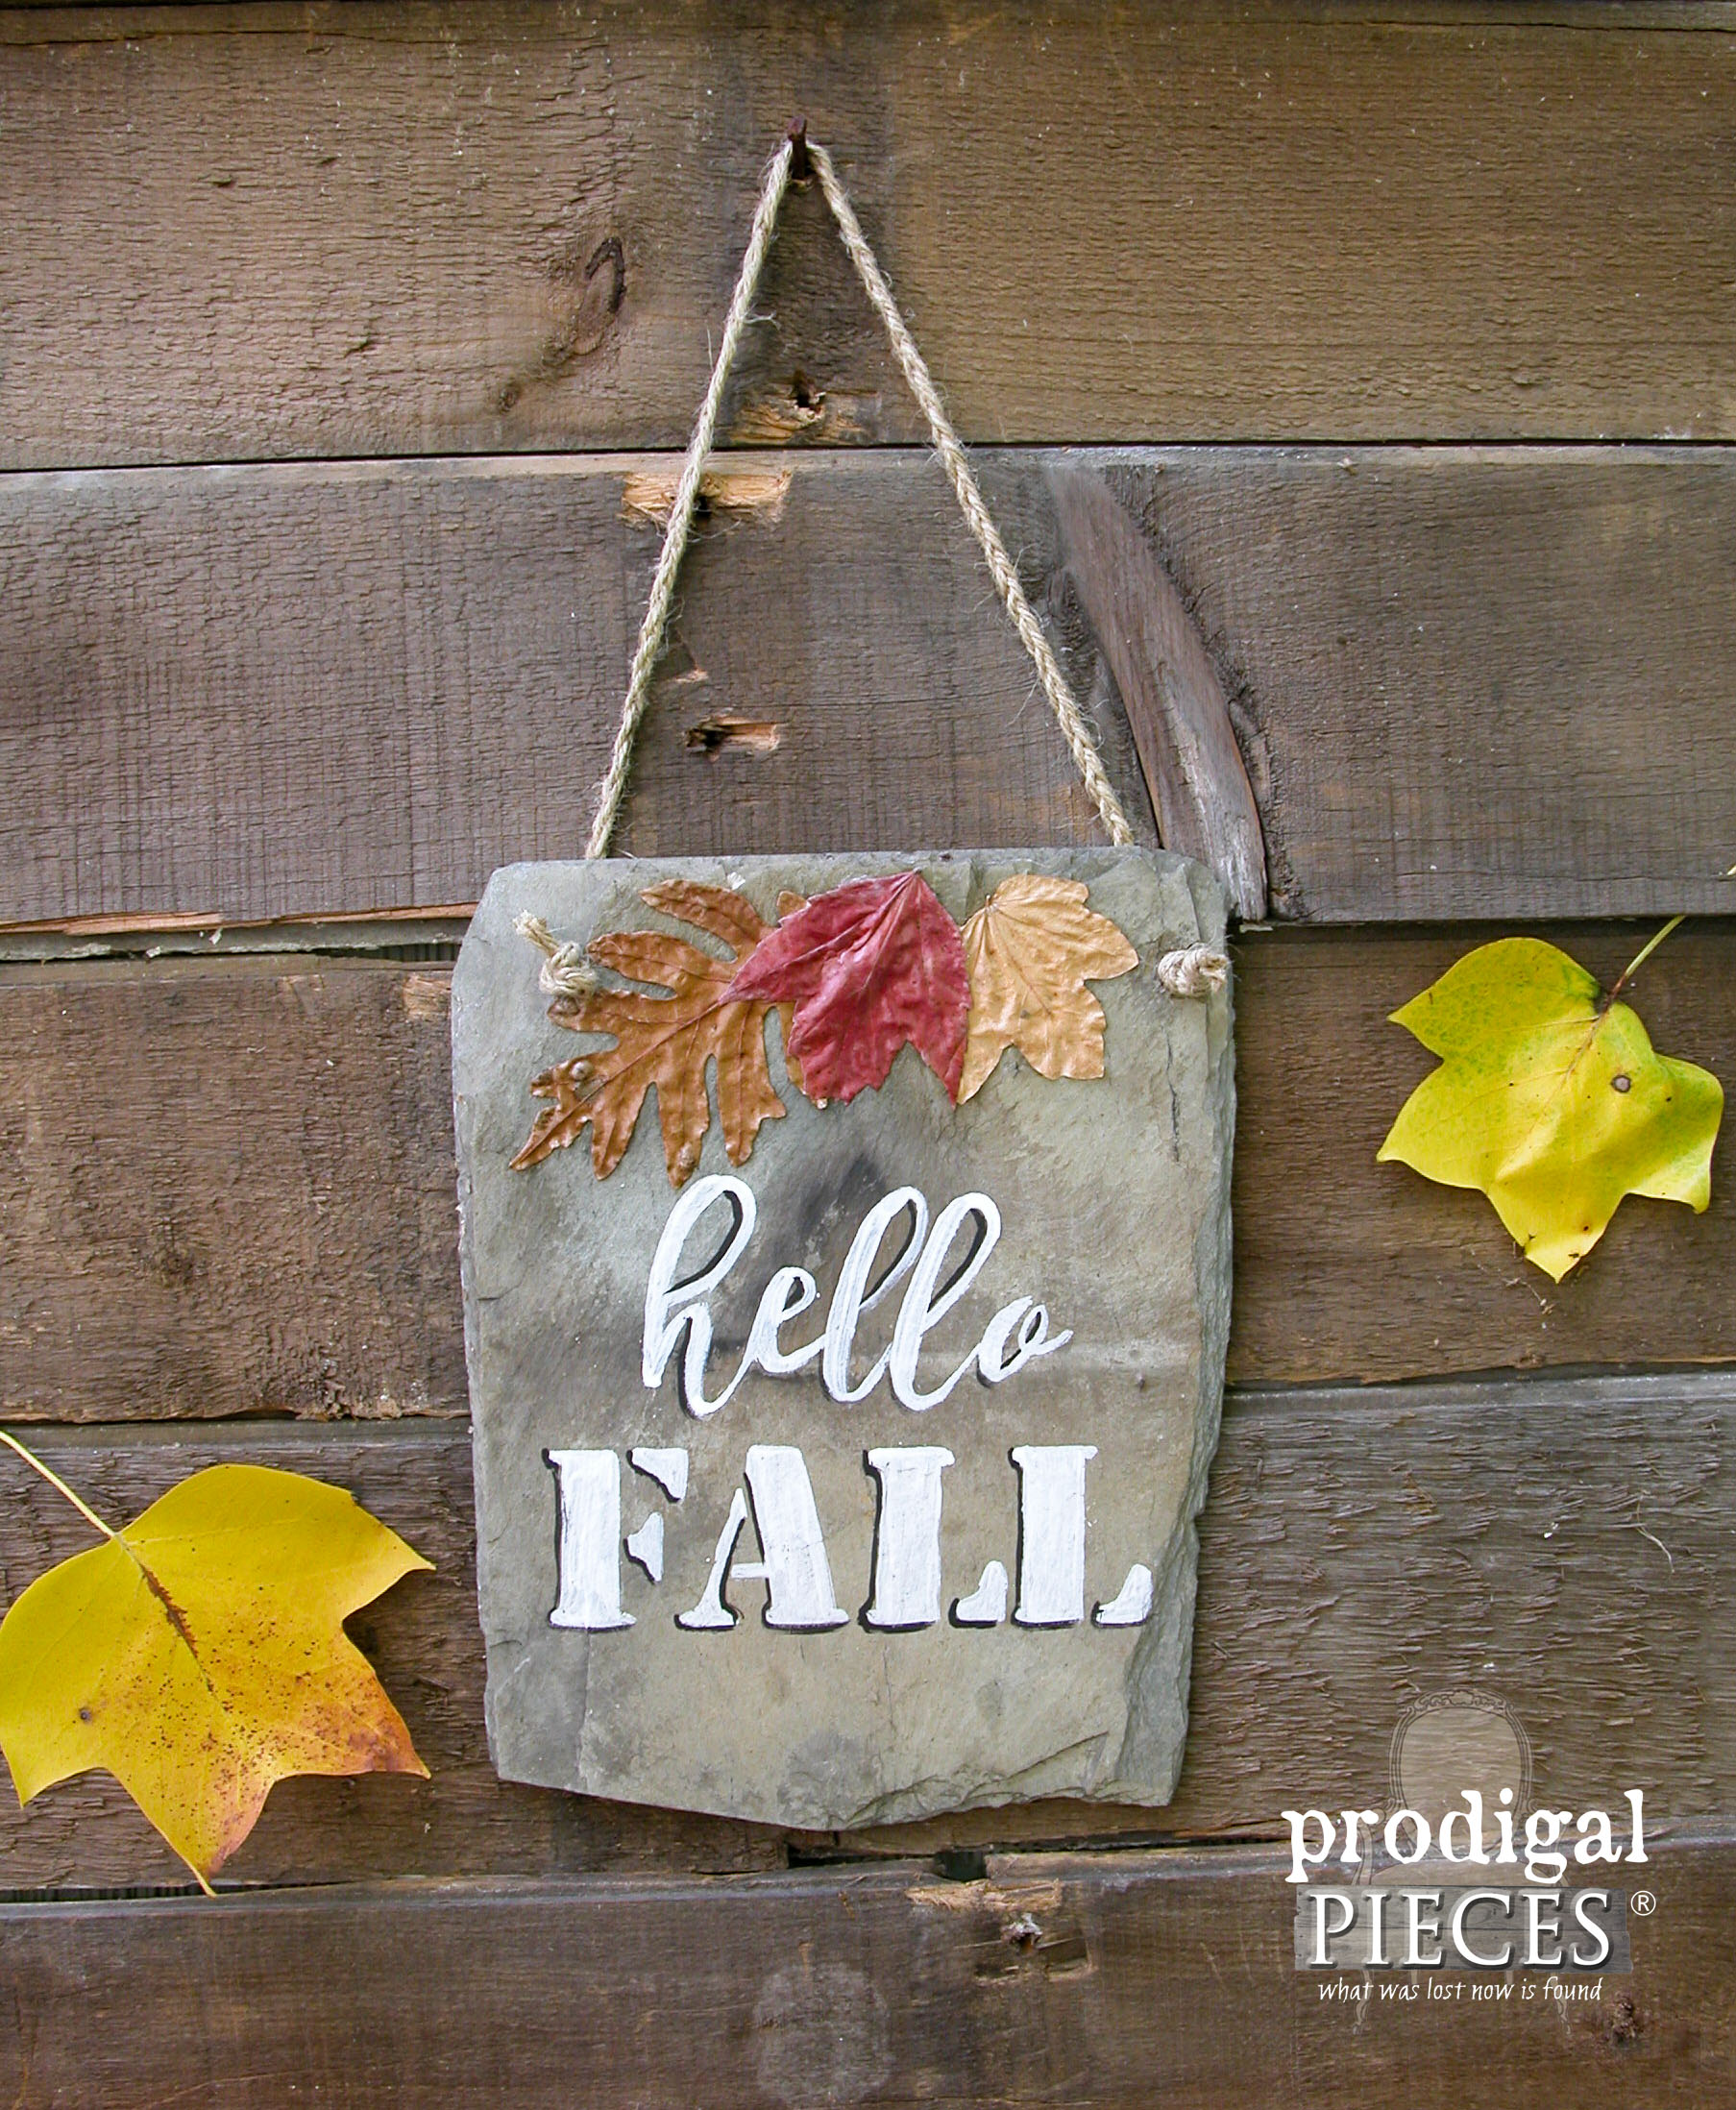 Hello Fall Sign Painted on Reclaimed Barn Roof Slate Shingel by Prodigal Pieces | www.prodigalpieces.com